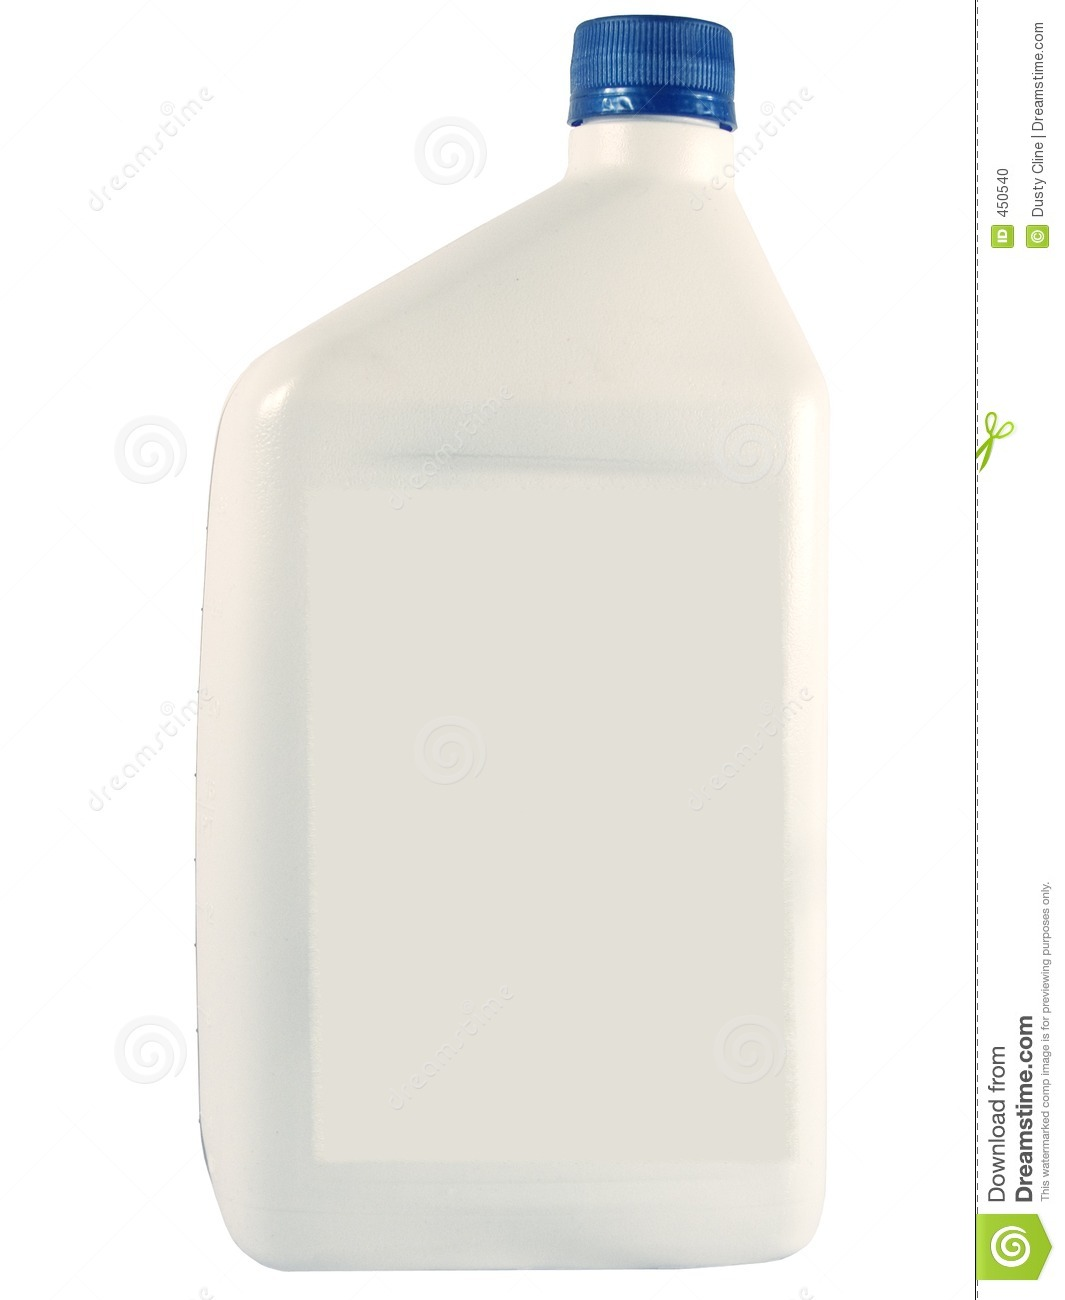 white oil bottle stock photo image 450540 state clip art free state clipart images